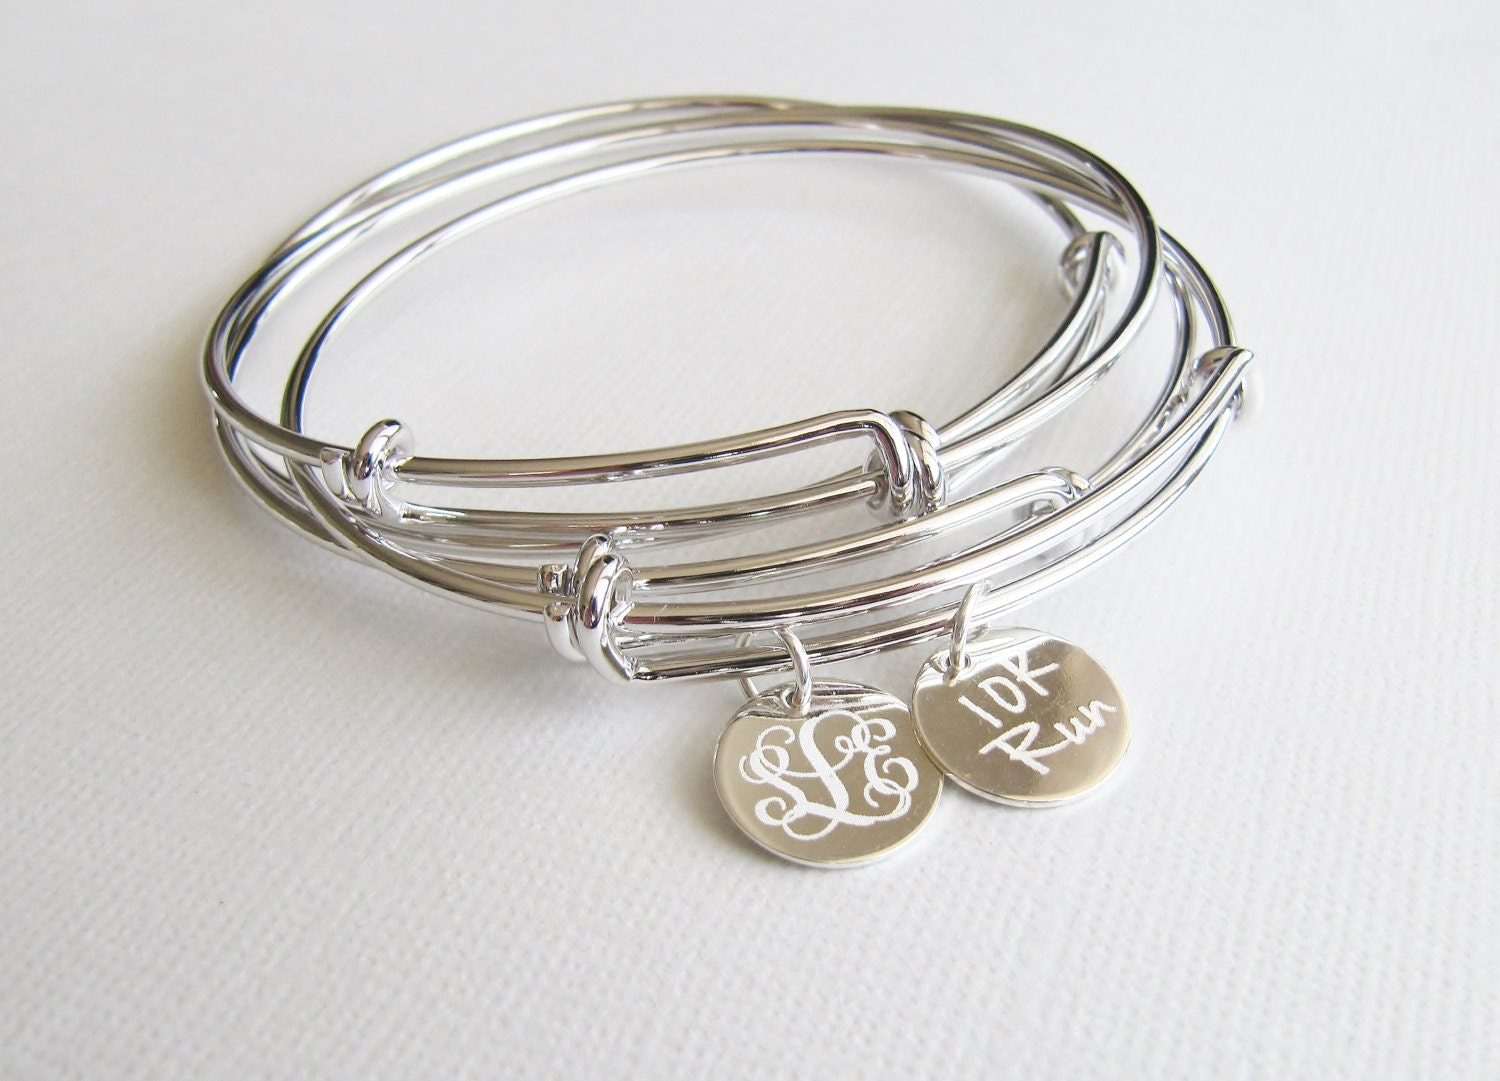 adjustable bangle bracelet personalized bracelet message. Black Bedroom Furniture Sets. Home Design Ideas